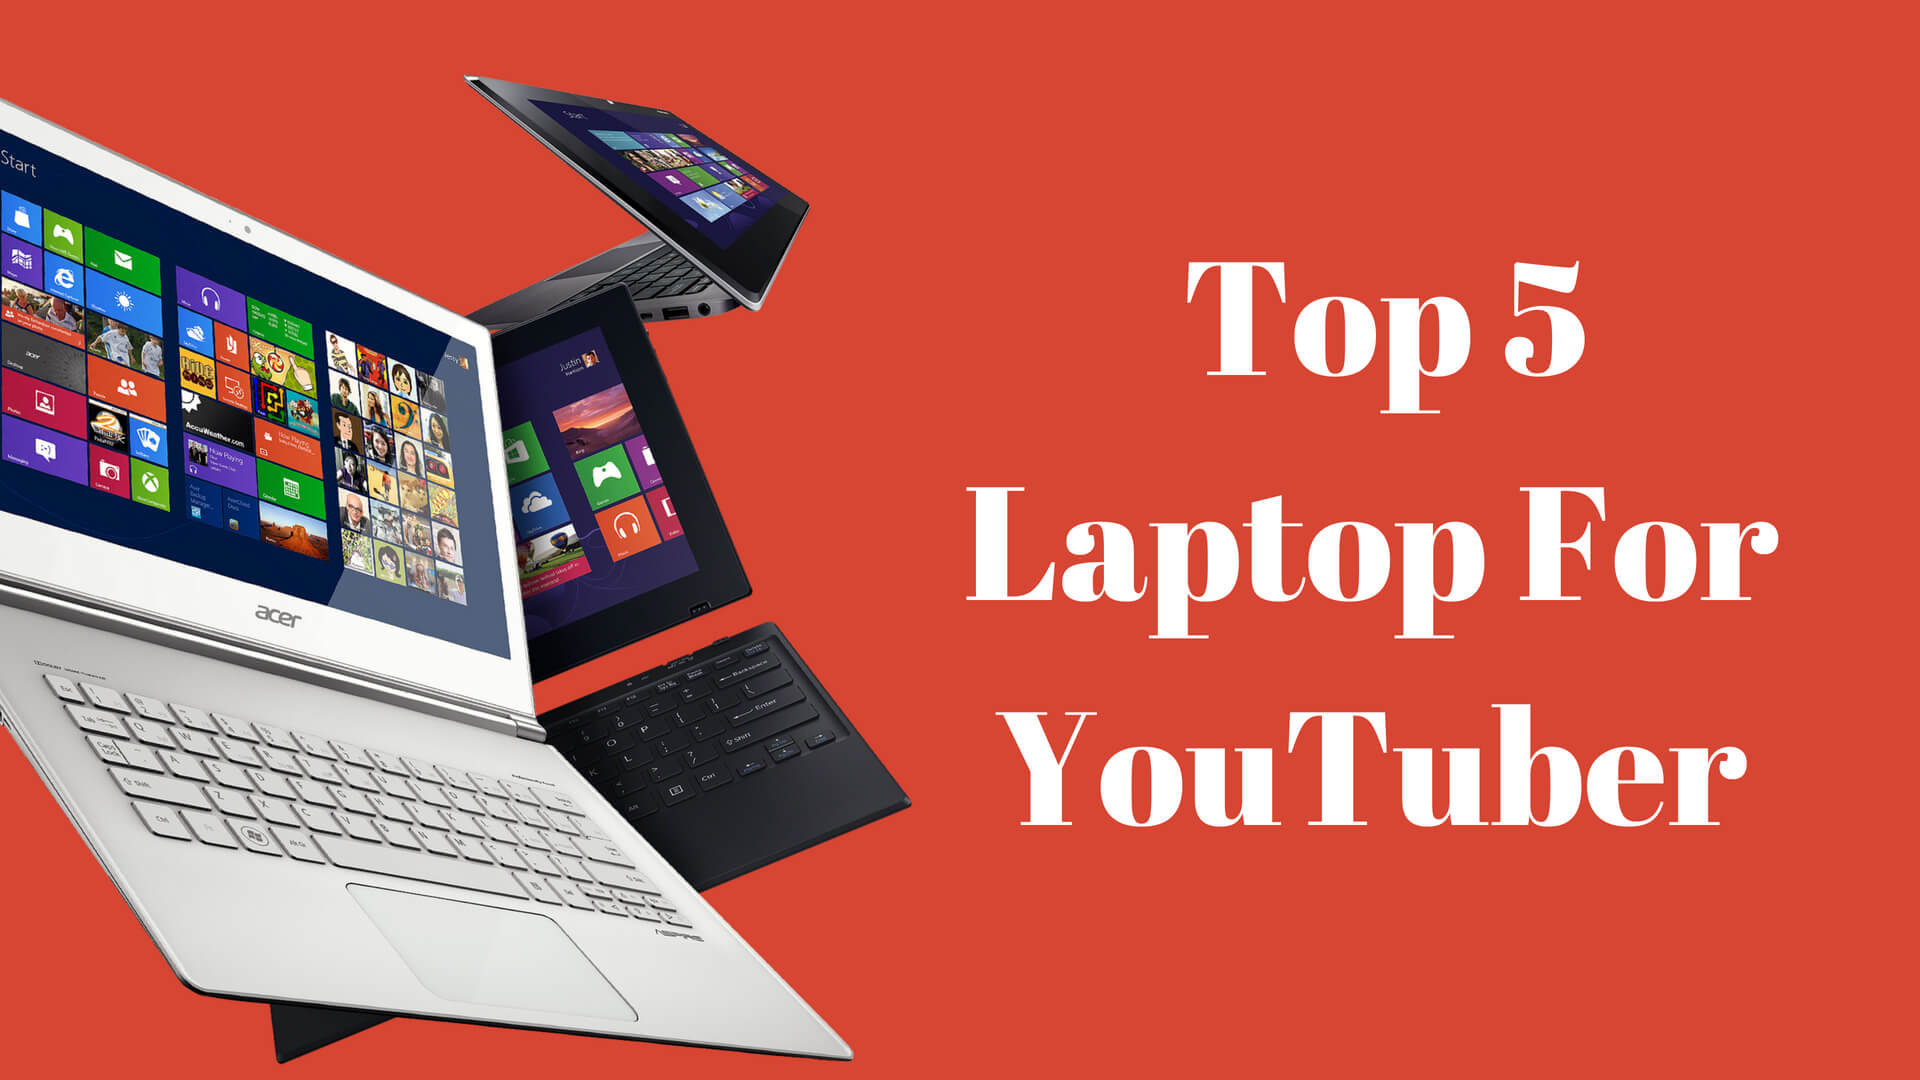 Top 5 Super Laptops